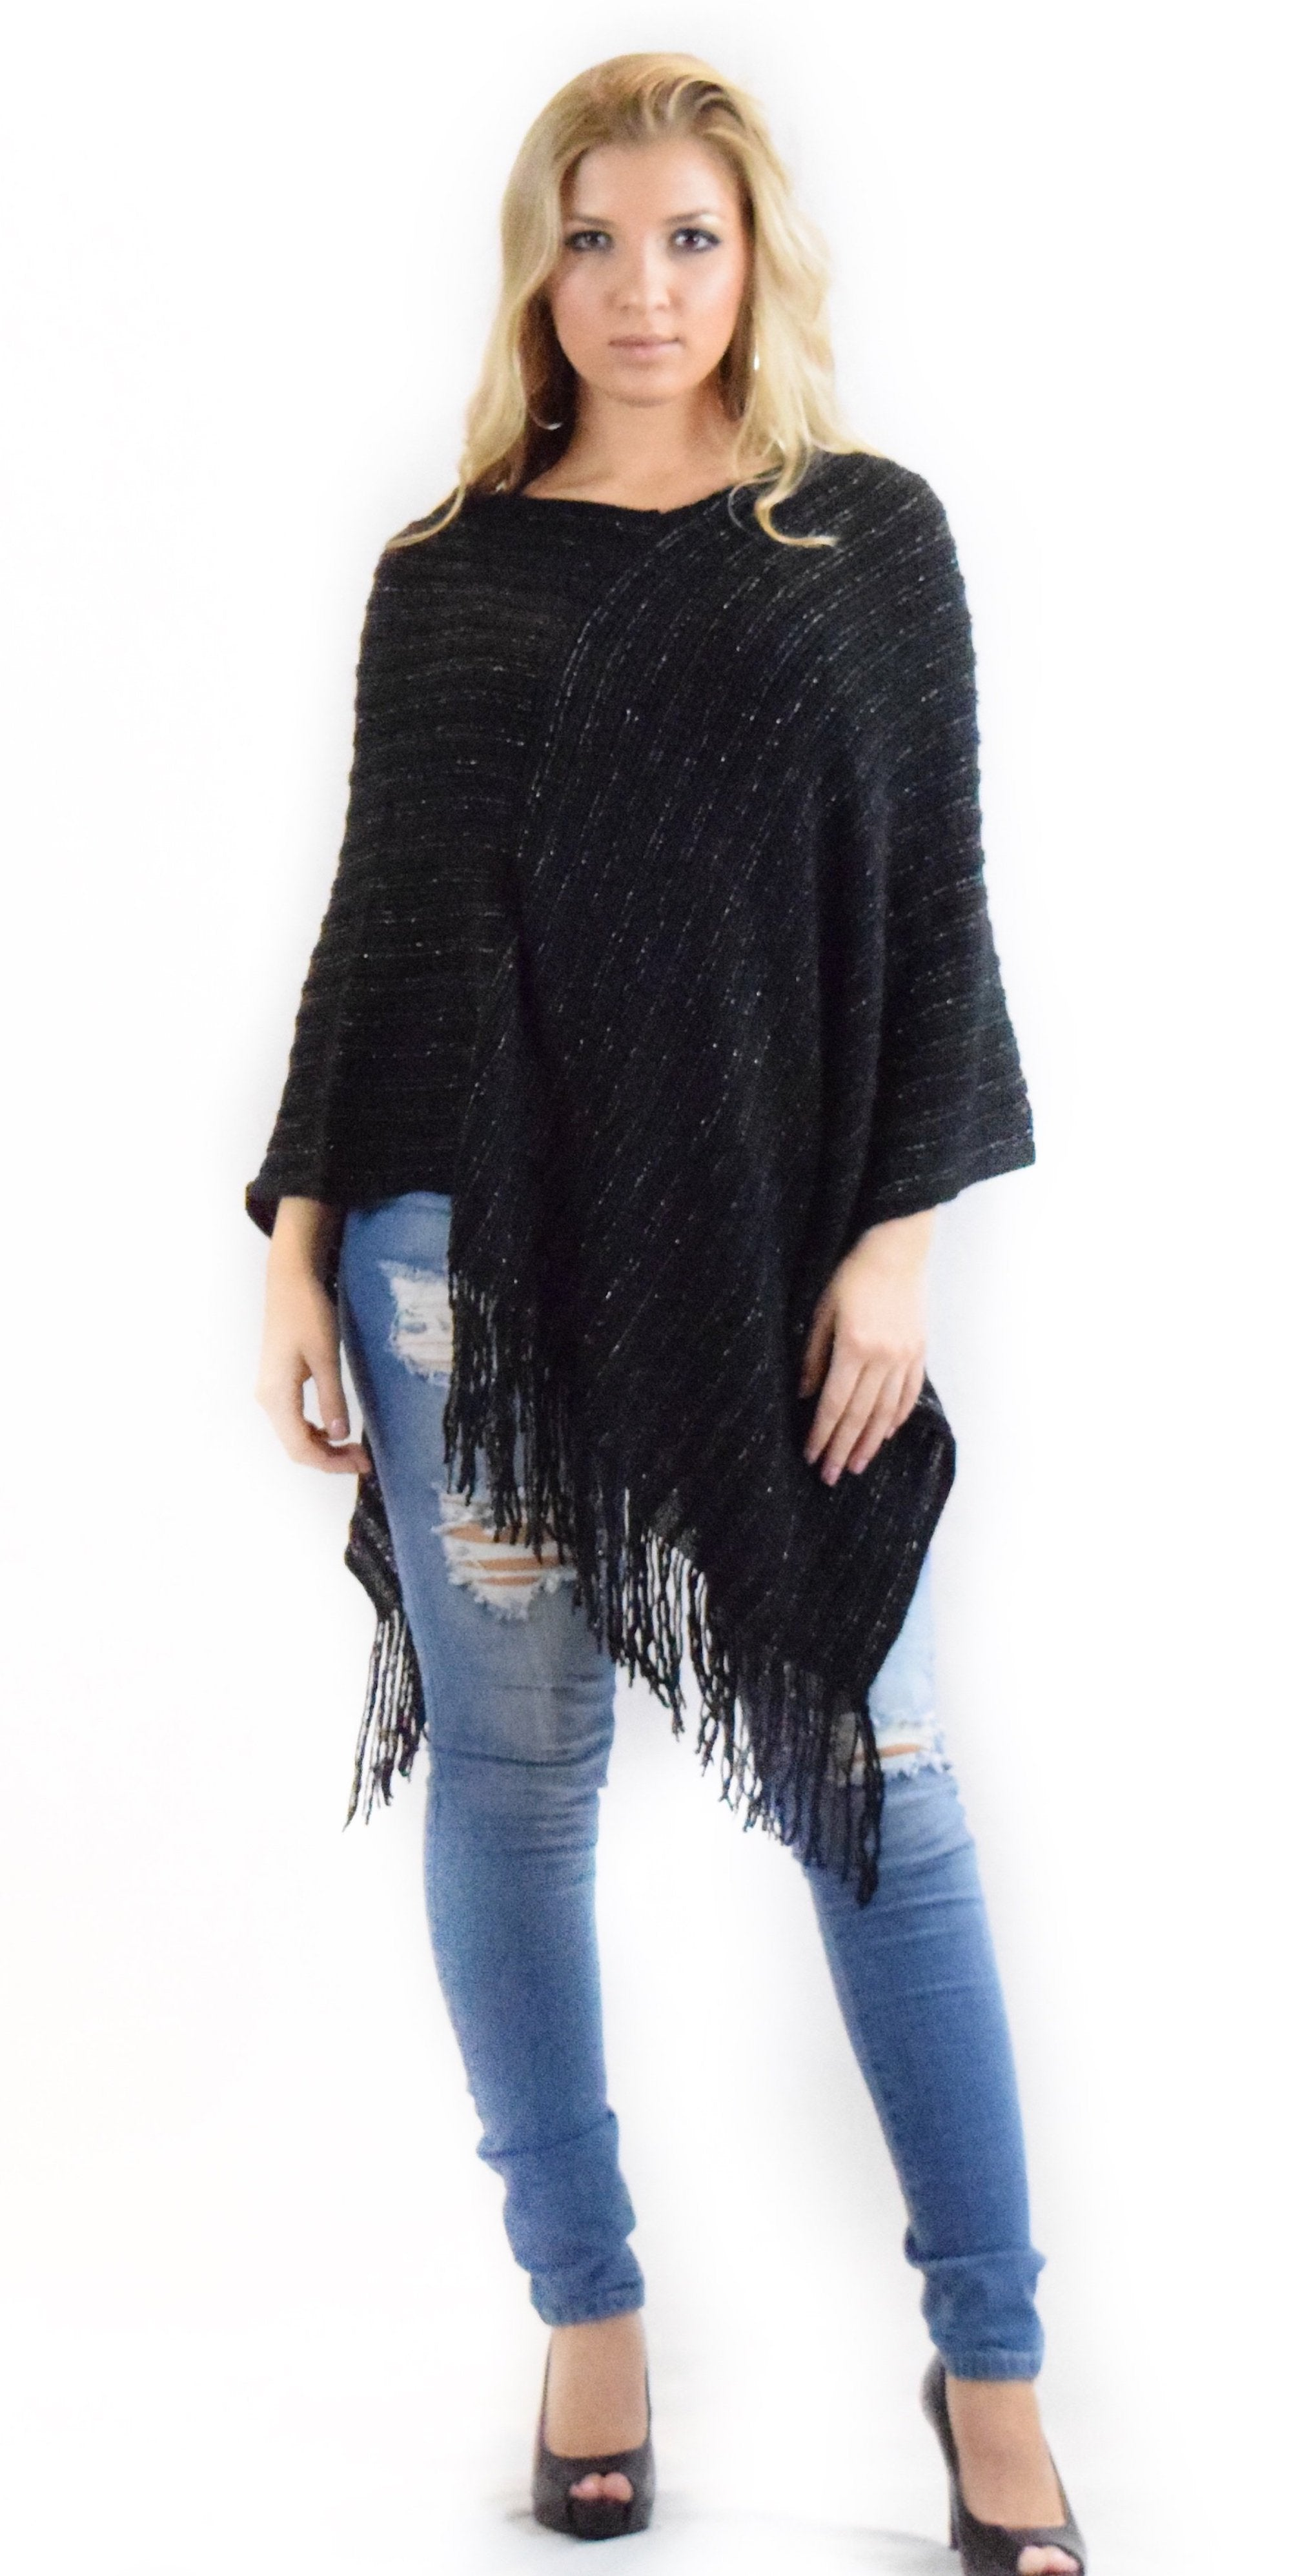 poncho black vneck spring fall fashion girl lady woman clothes clothing style trend